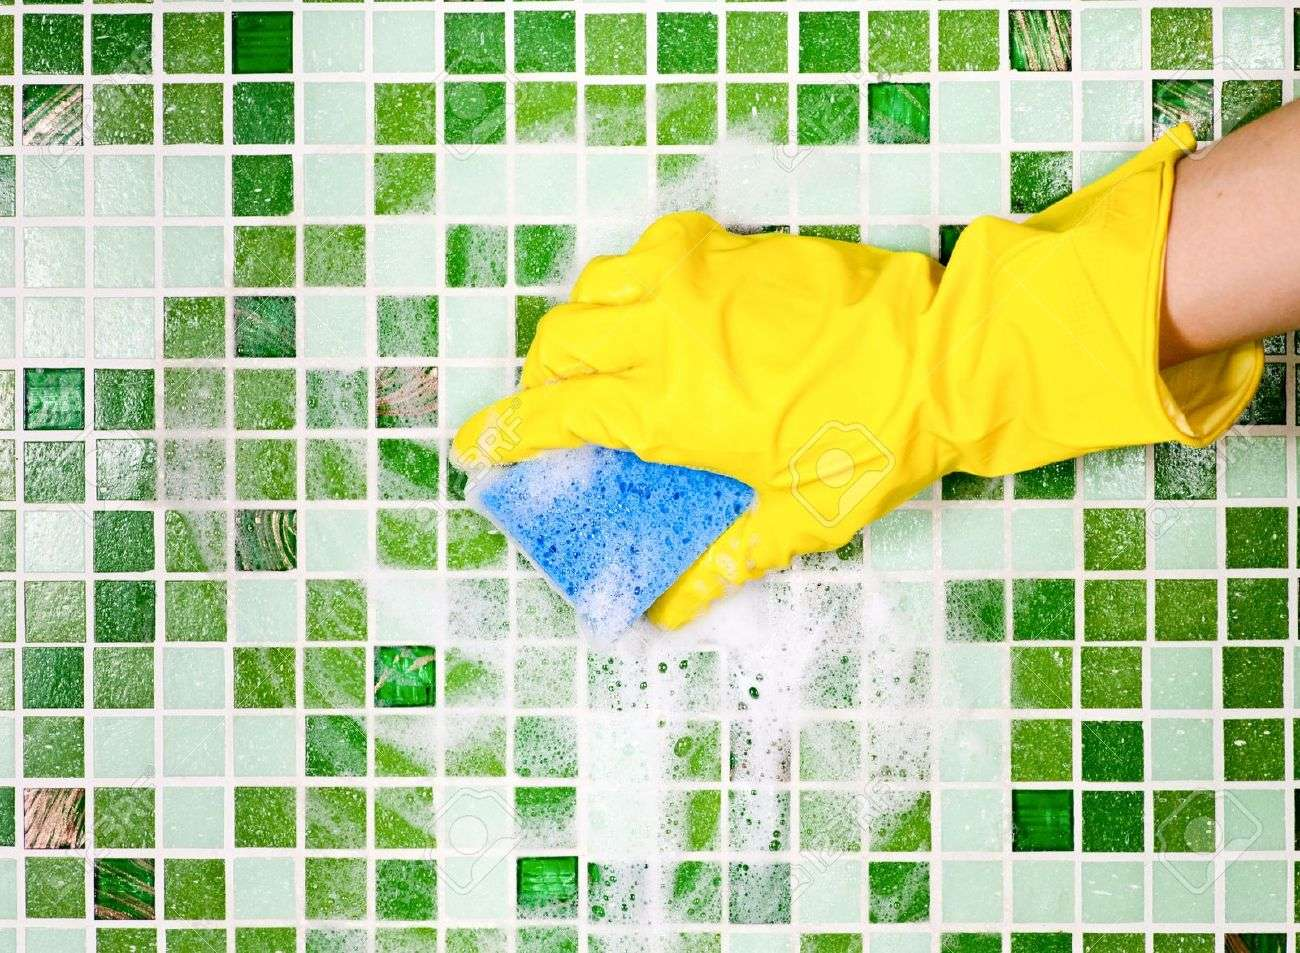 6559732-Hand-in-yellow-protective-glove-cleaning-mosaic-wall-Stock-Photo